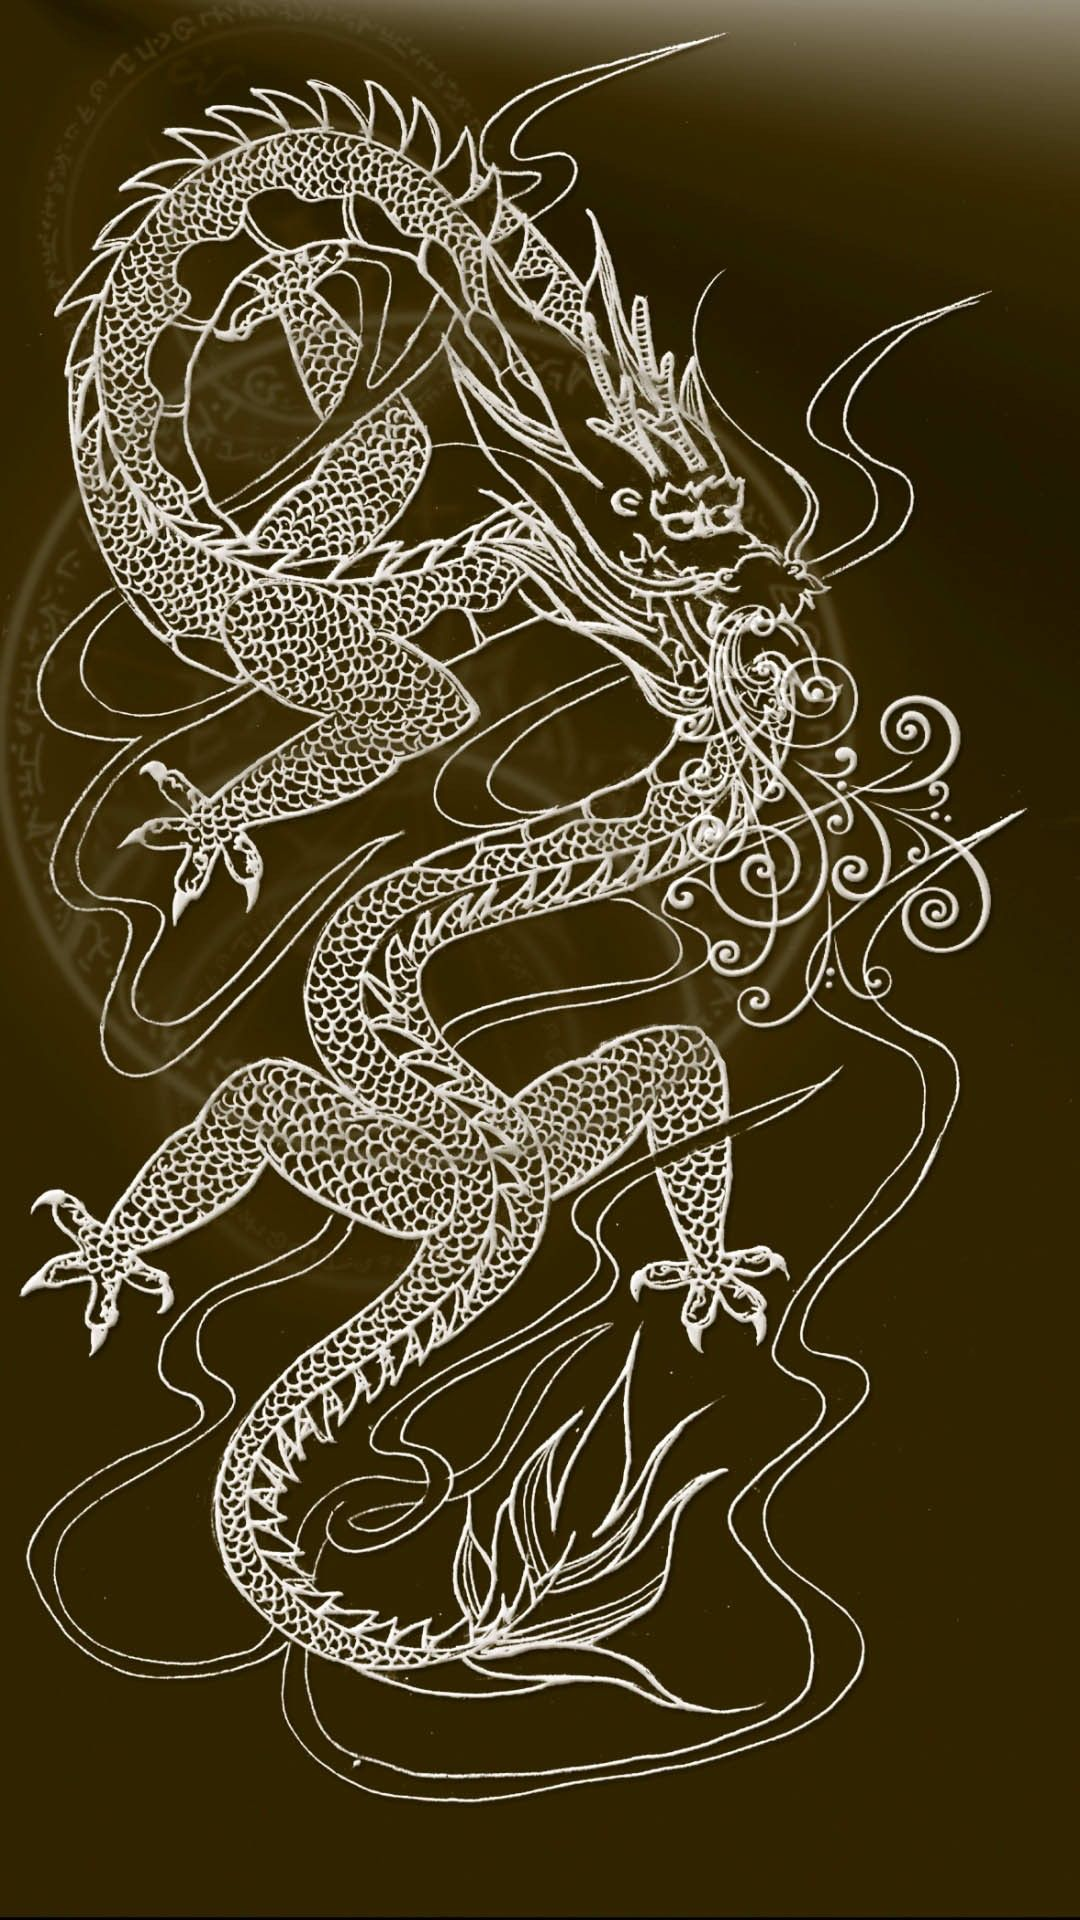 Pin By Leah Hoffman On Dragons Japanese Dragon Iphone Background Iphone Wallpaper